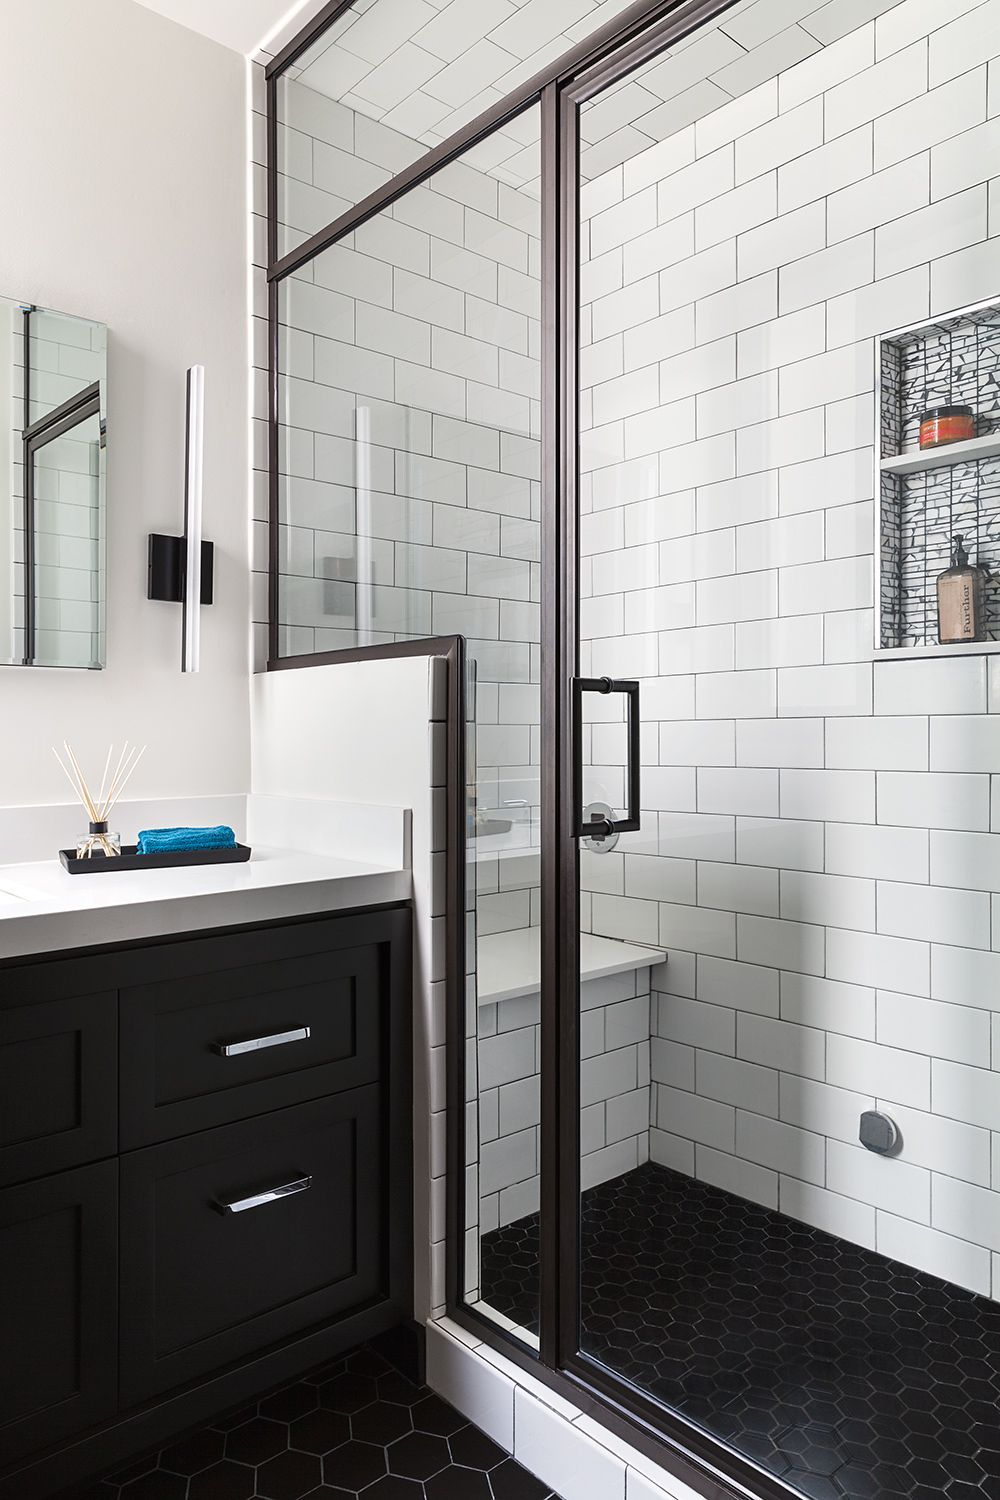 San Francisco Bathroom Remodel Steam Shower Black Hex Floor Tiles - Bathroom remodel san francisco